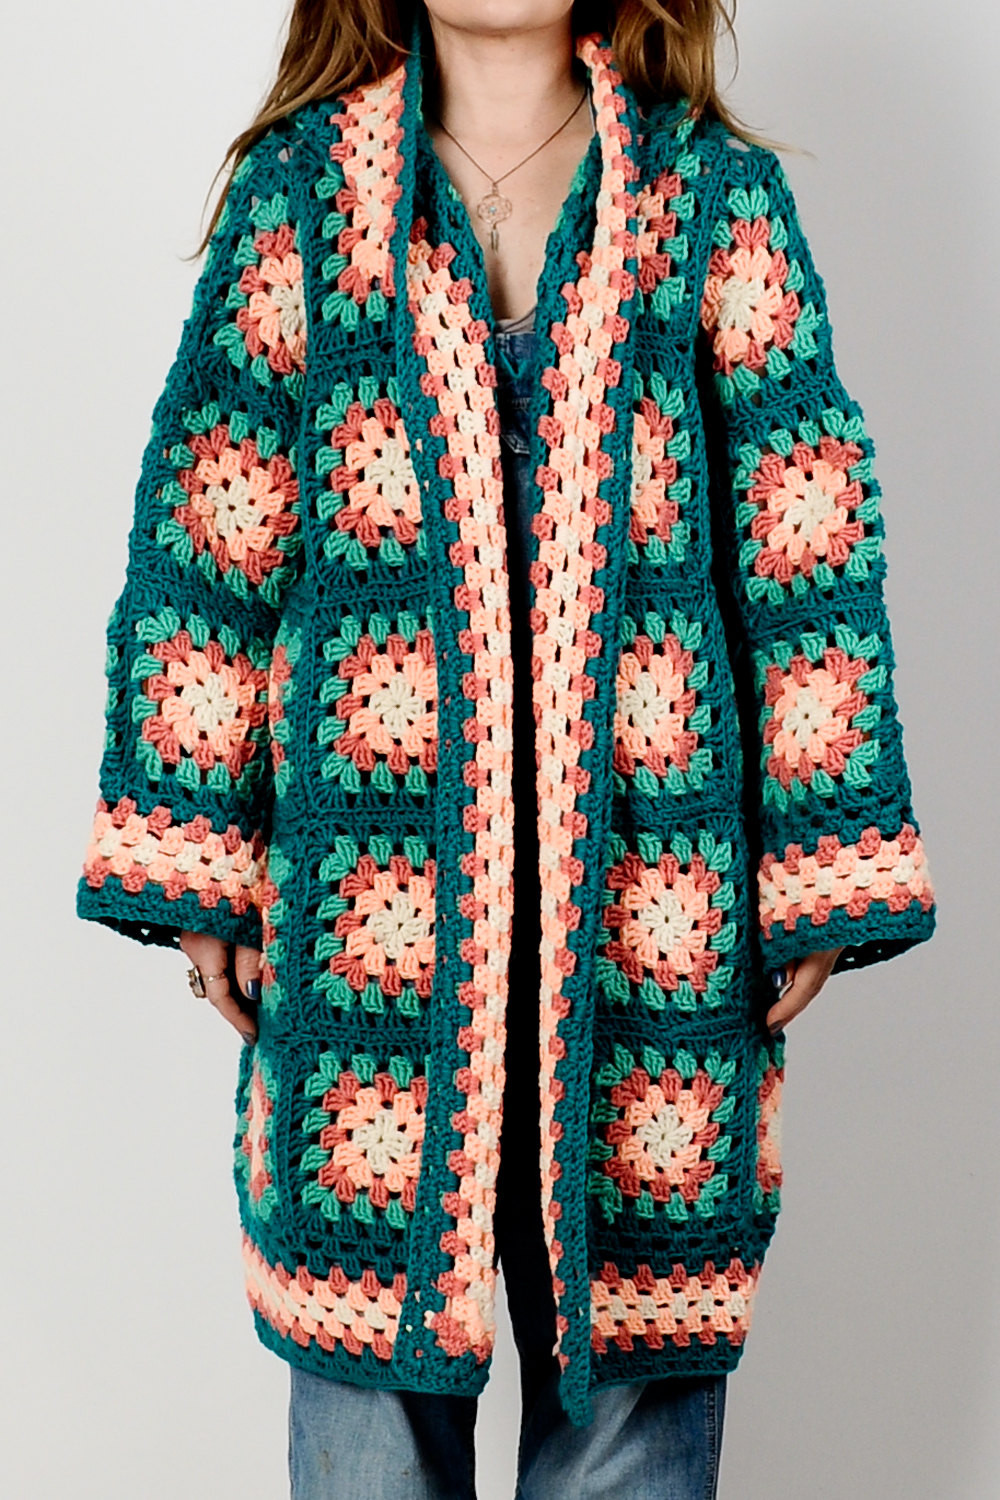 vintage 70s hooded granny square